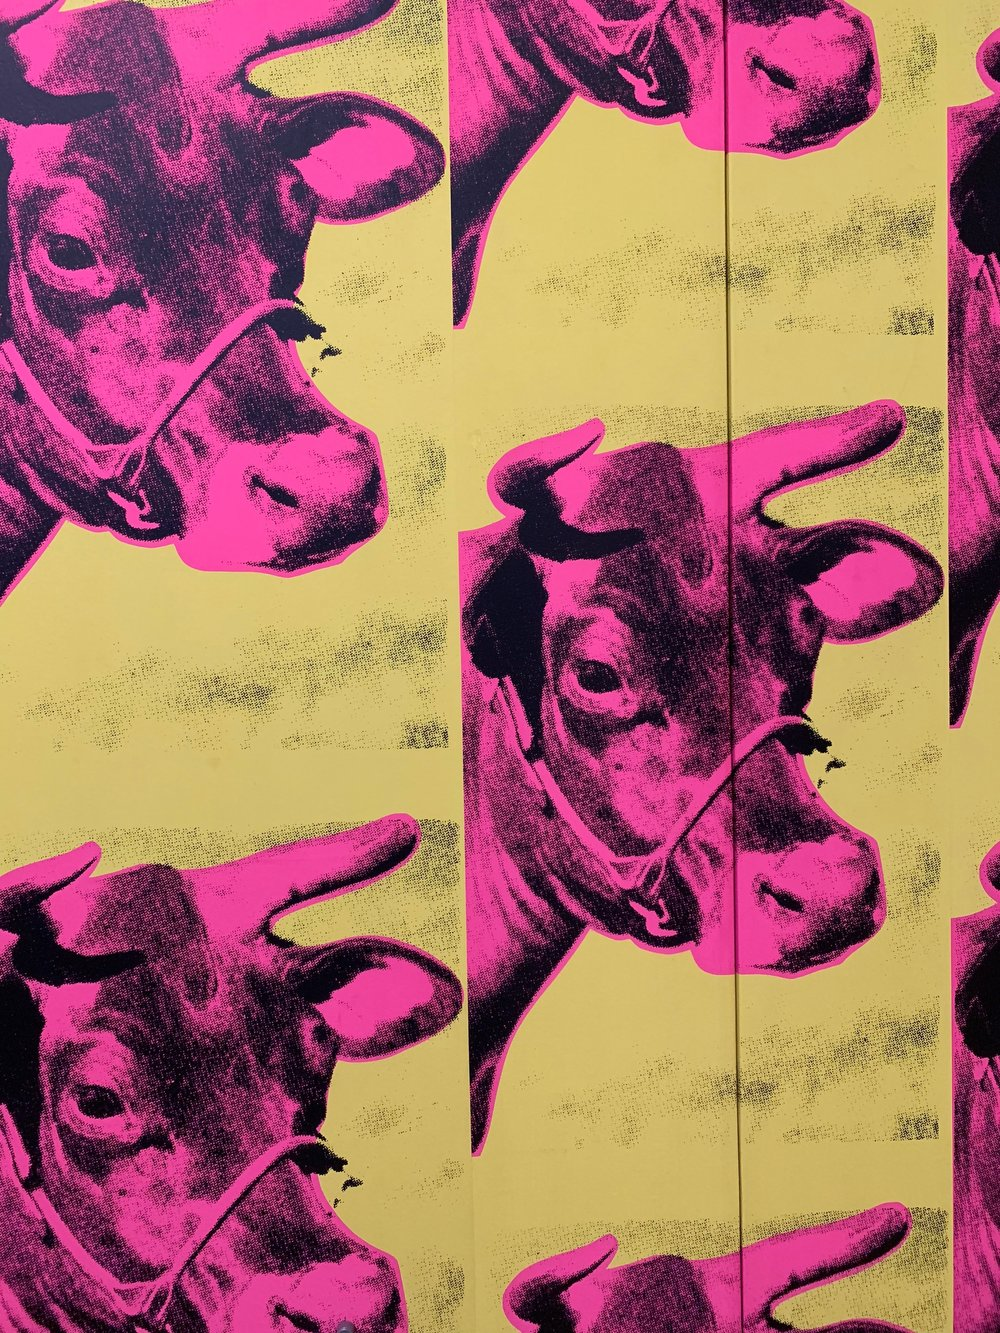 Warhol dug cows.